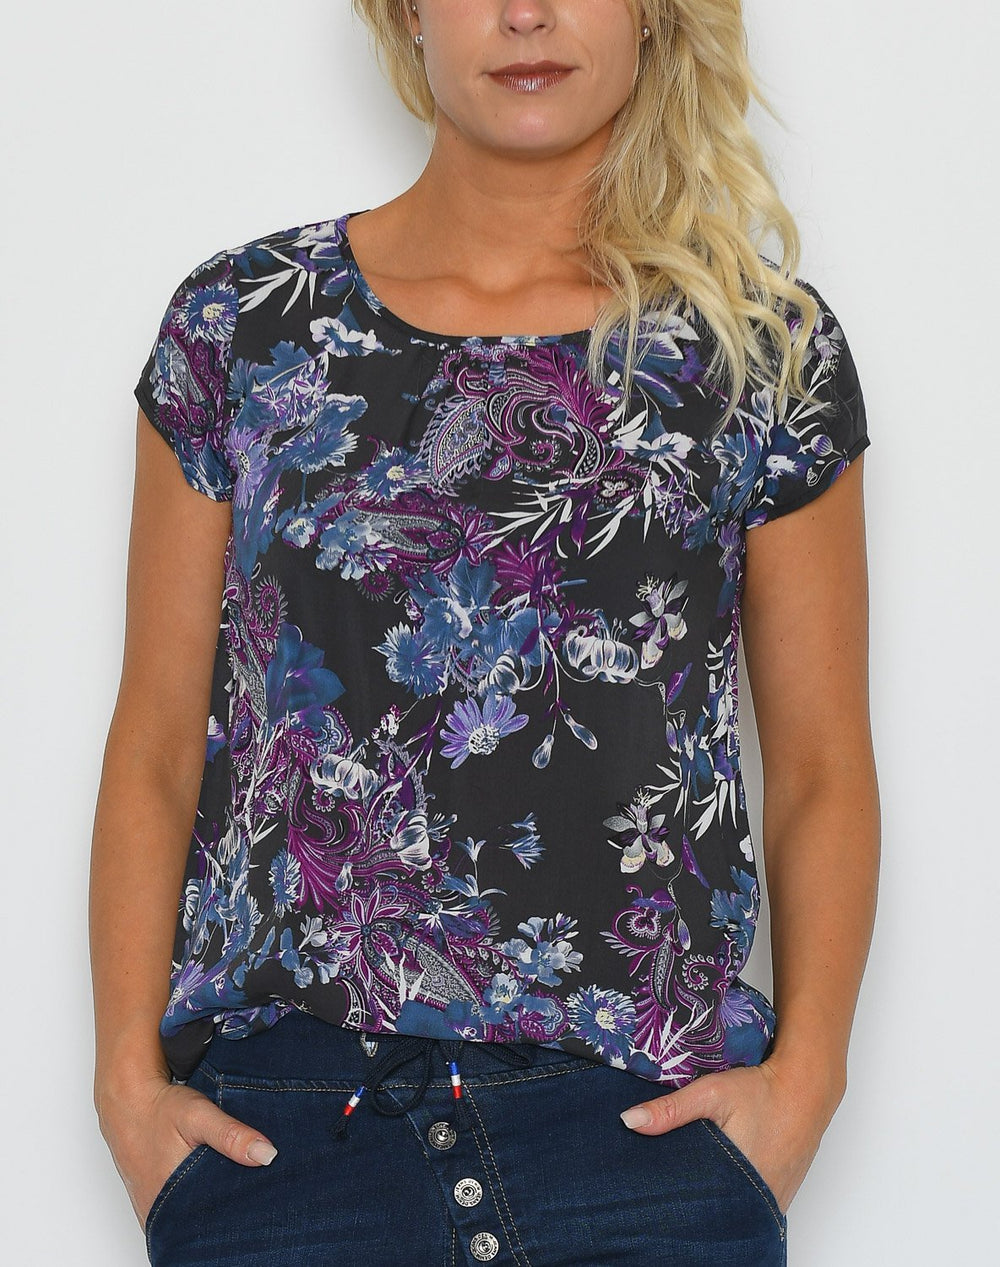 Soya Isabea 1 t-shirt purple mix - Online-Mode